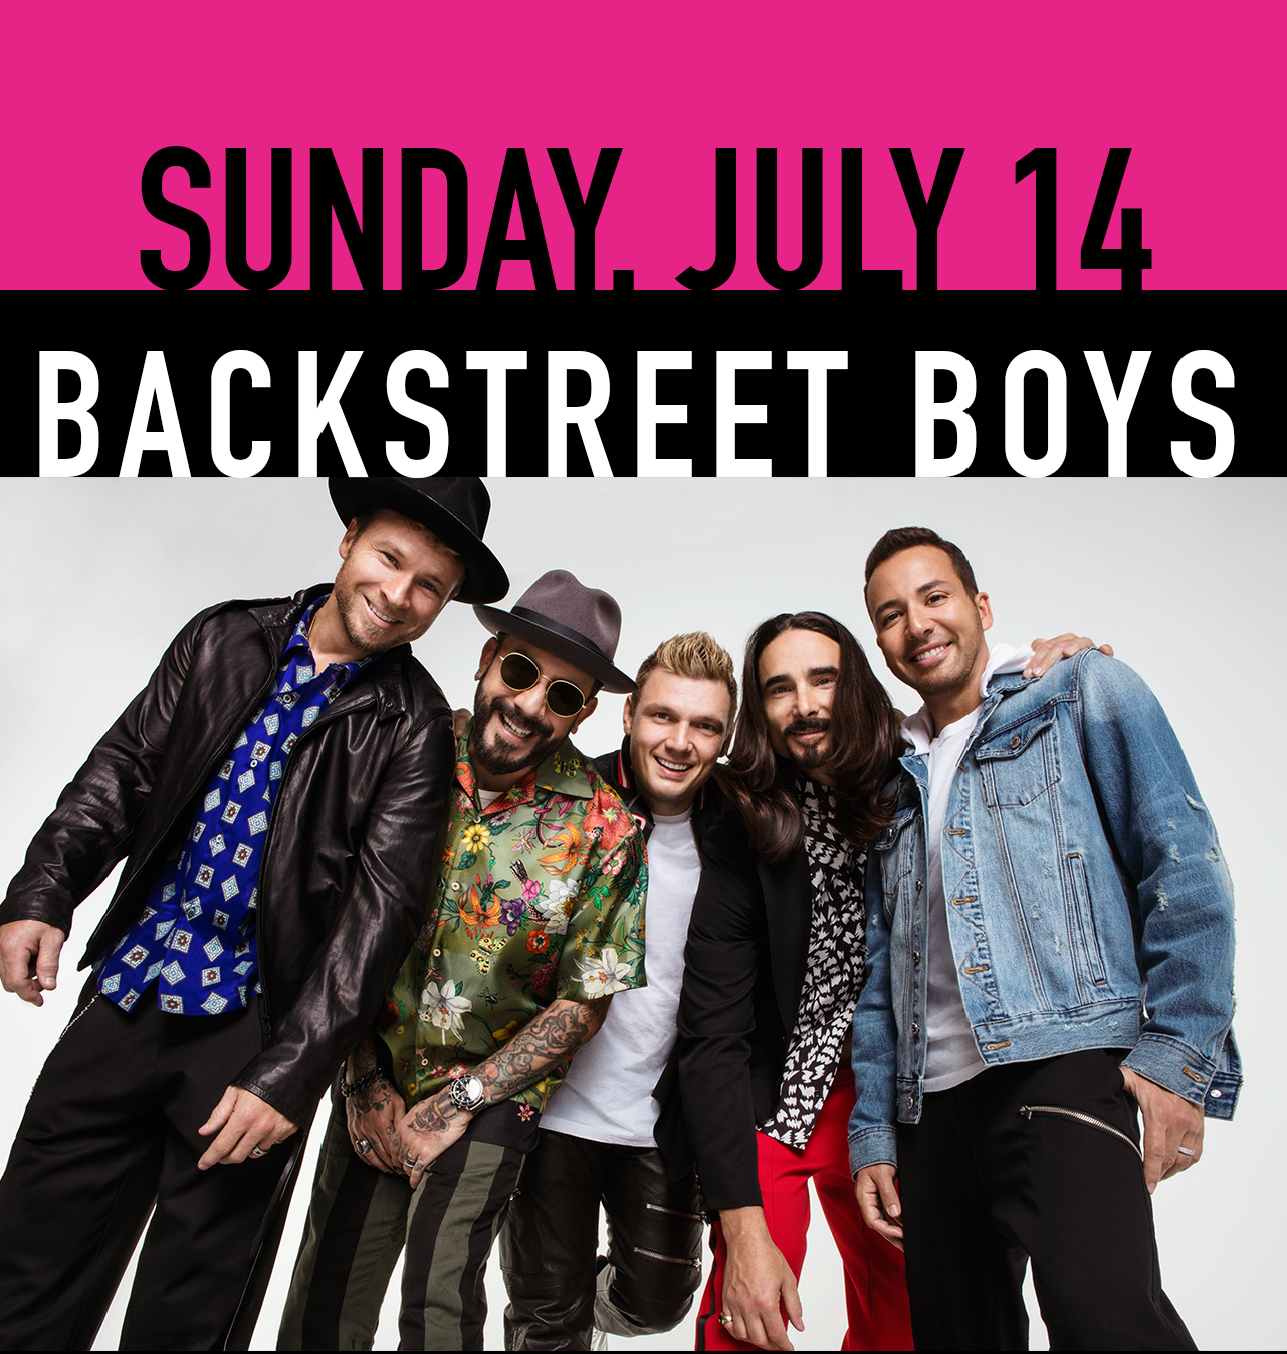 July 14 - Backstreet Boys